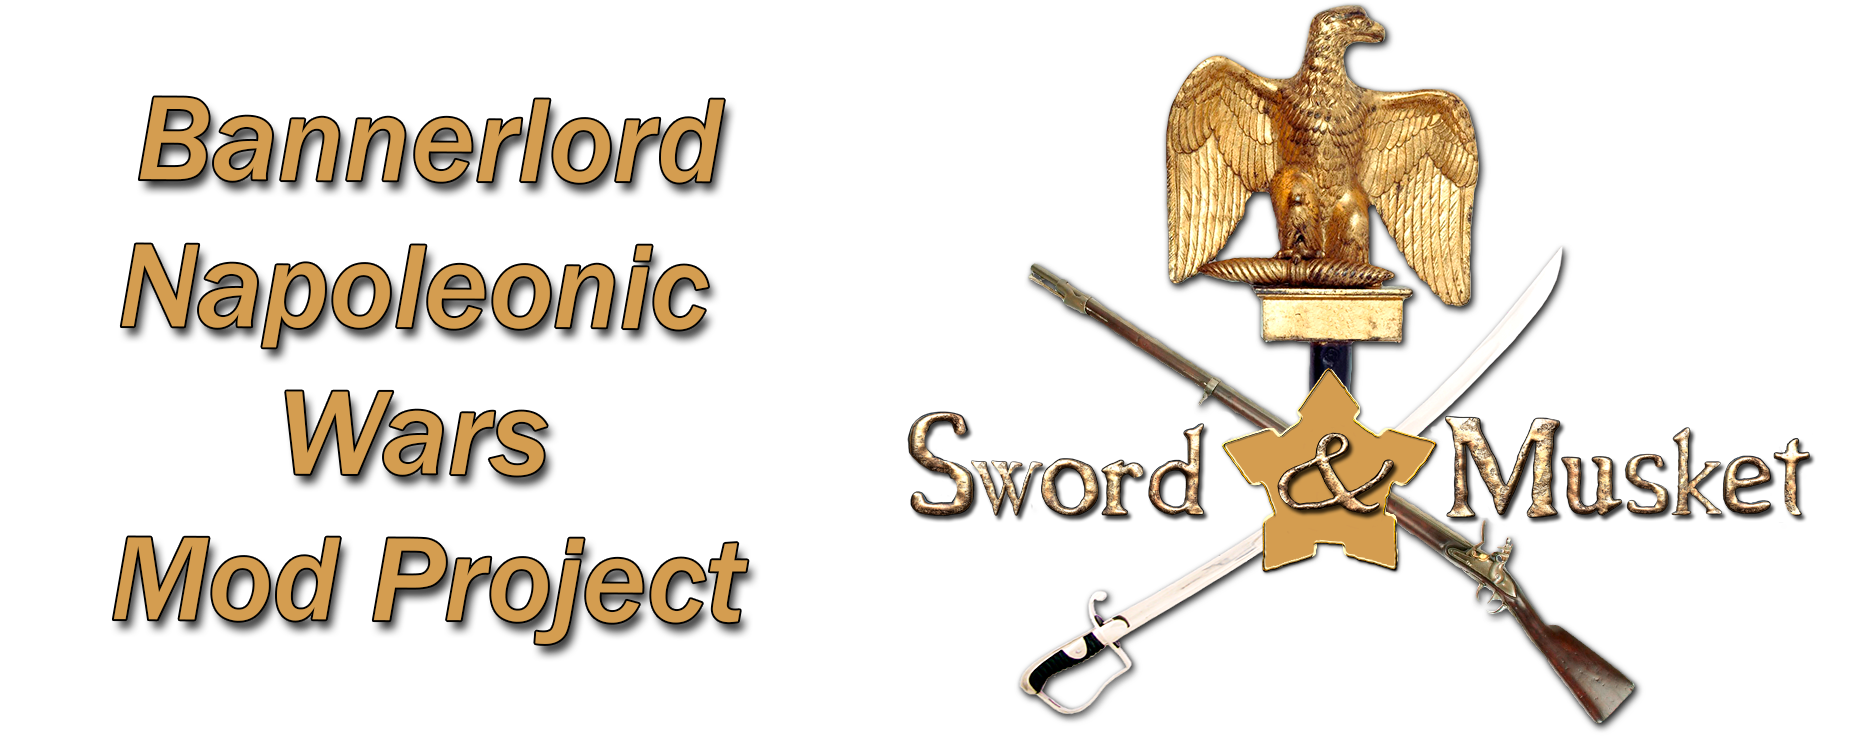 Sword_and_Musket_mod_project.png